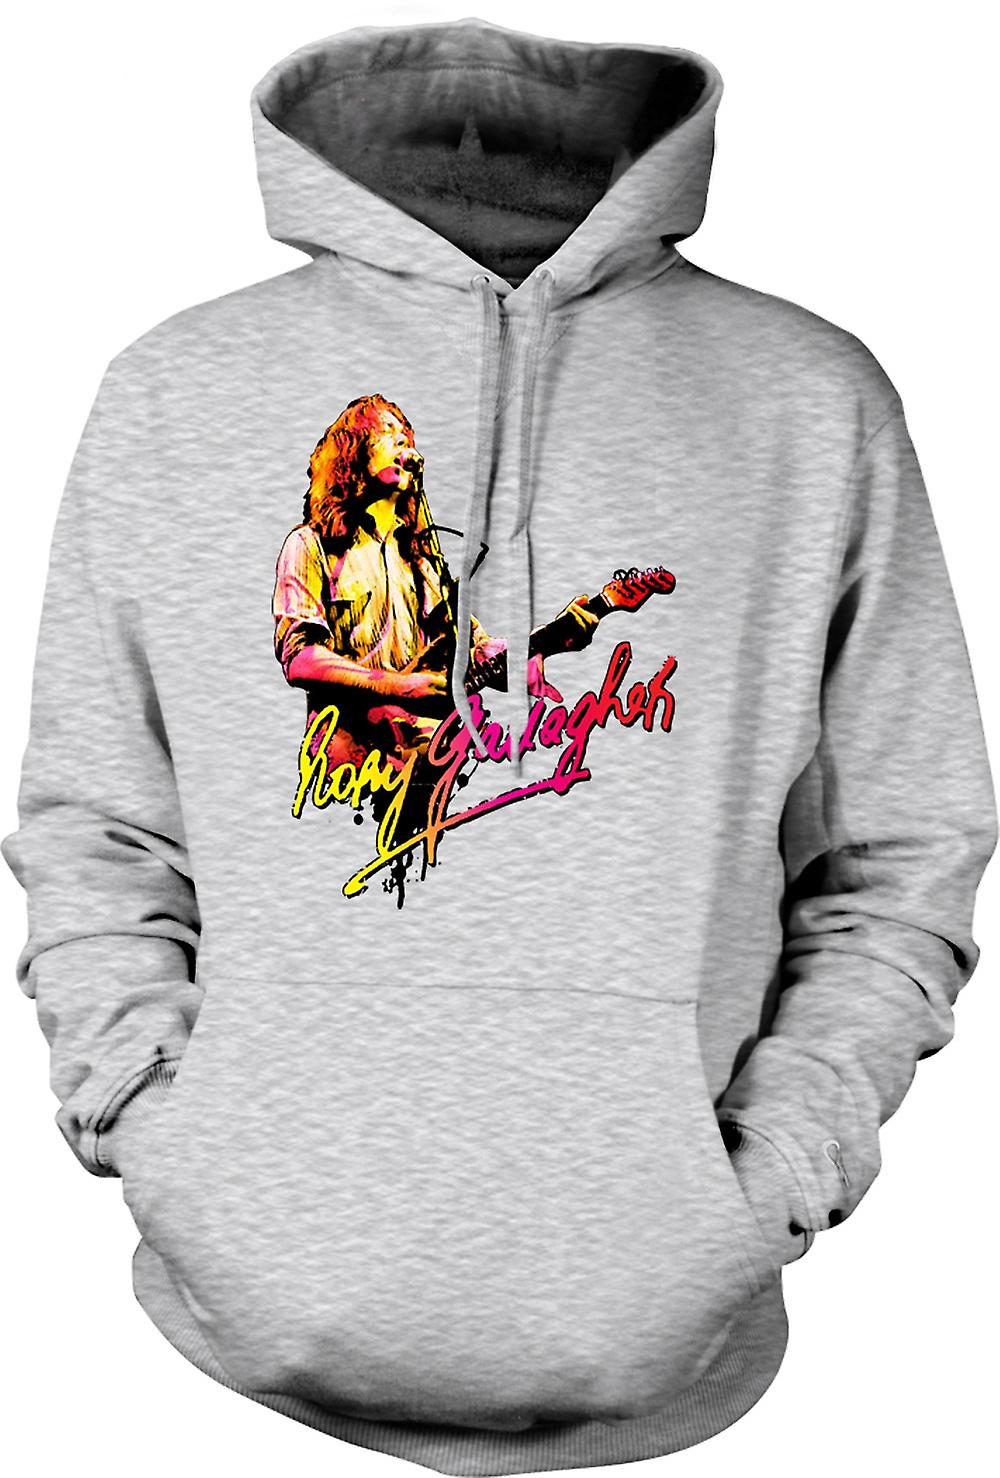 Mens Hoodie - Rory Gallagher - Blues God - Rock Music